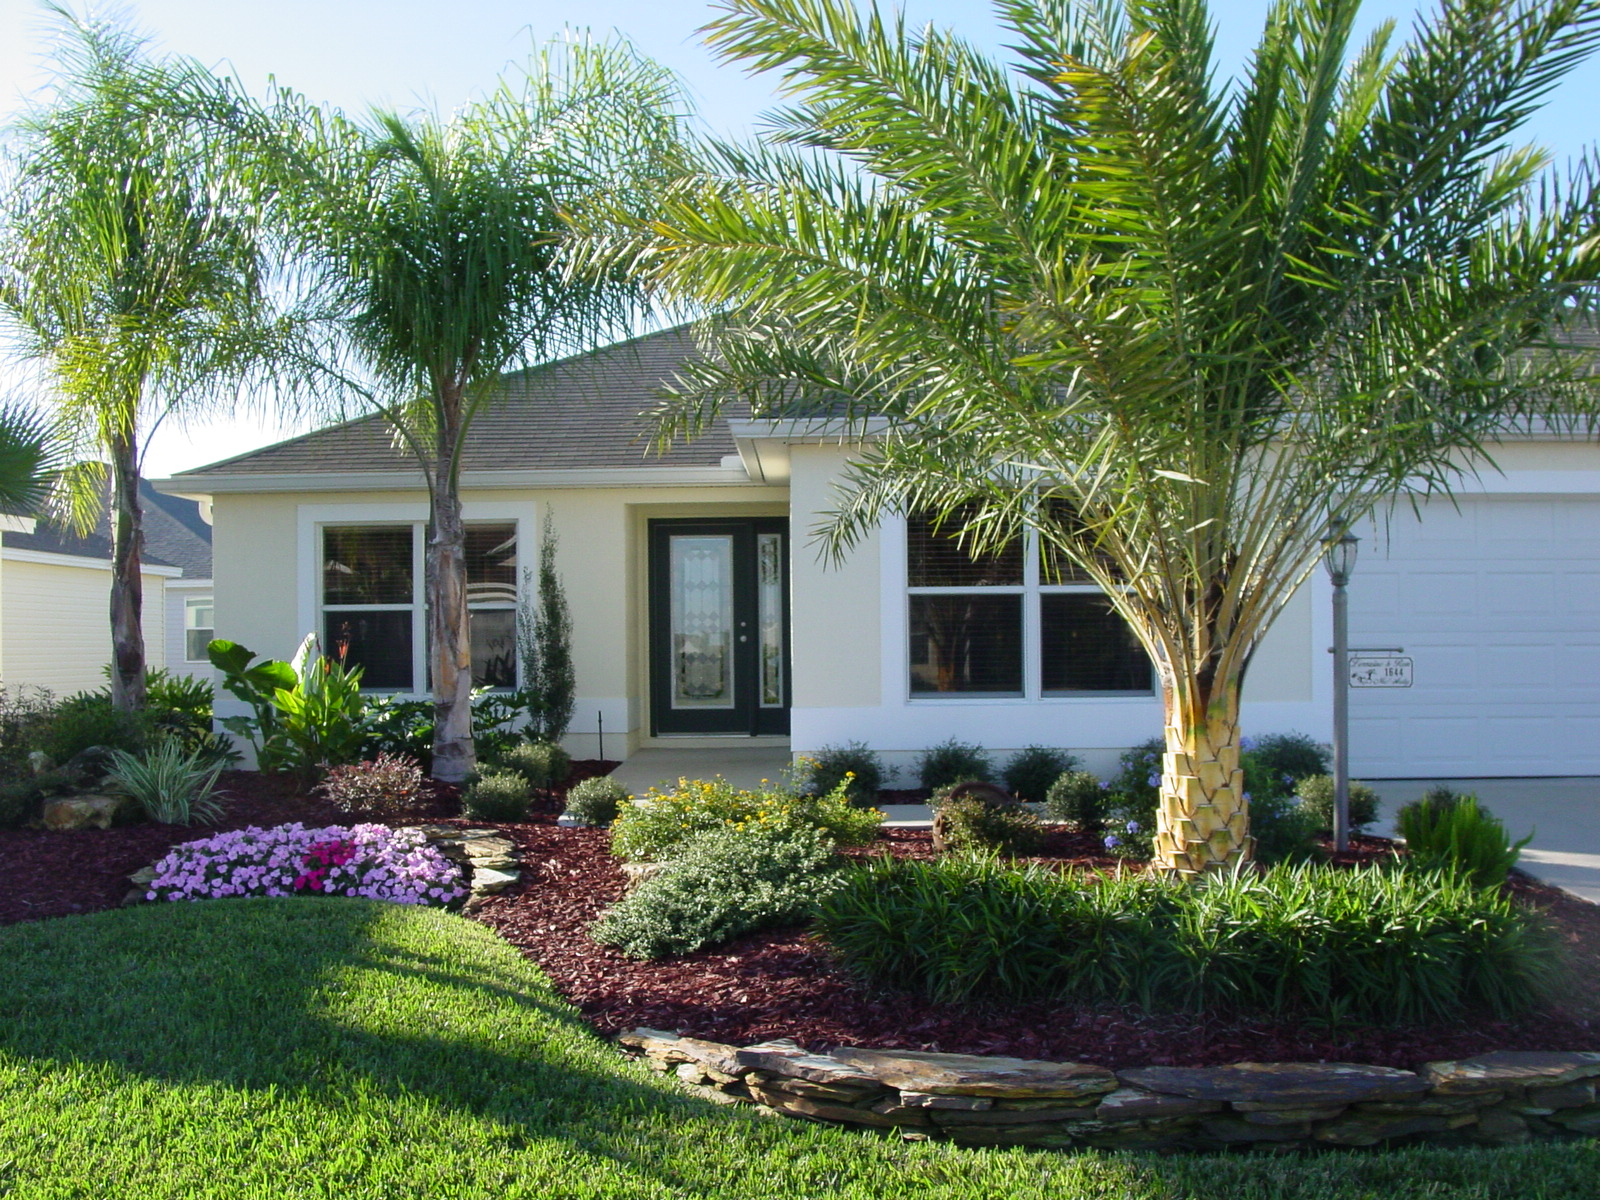 Rons landscaping inc about us Pictures of landscaping ideas